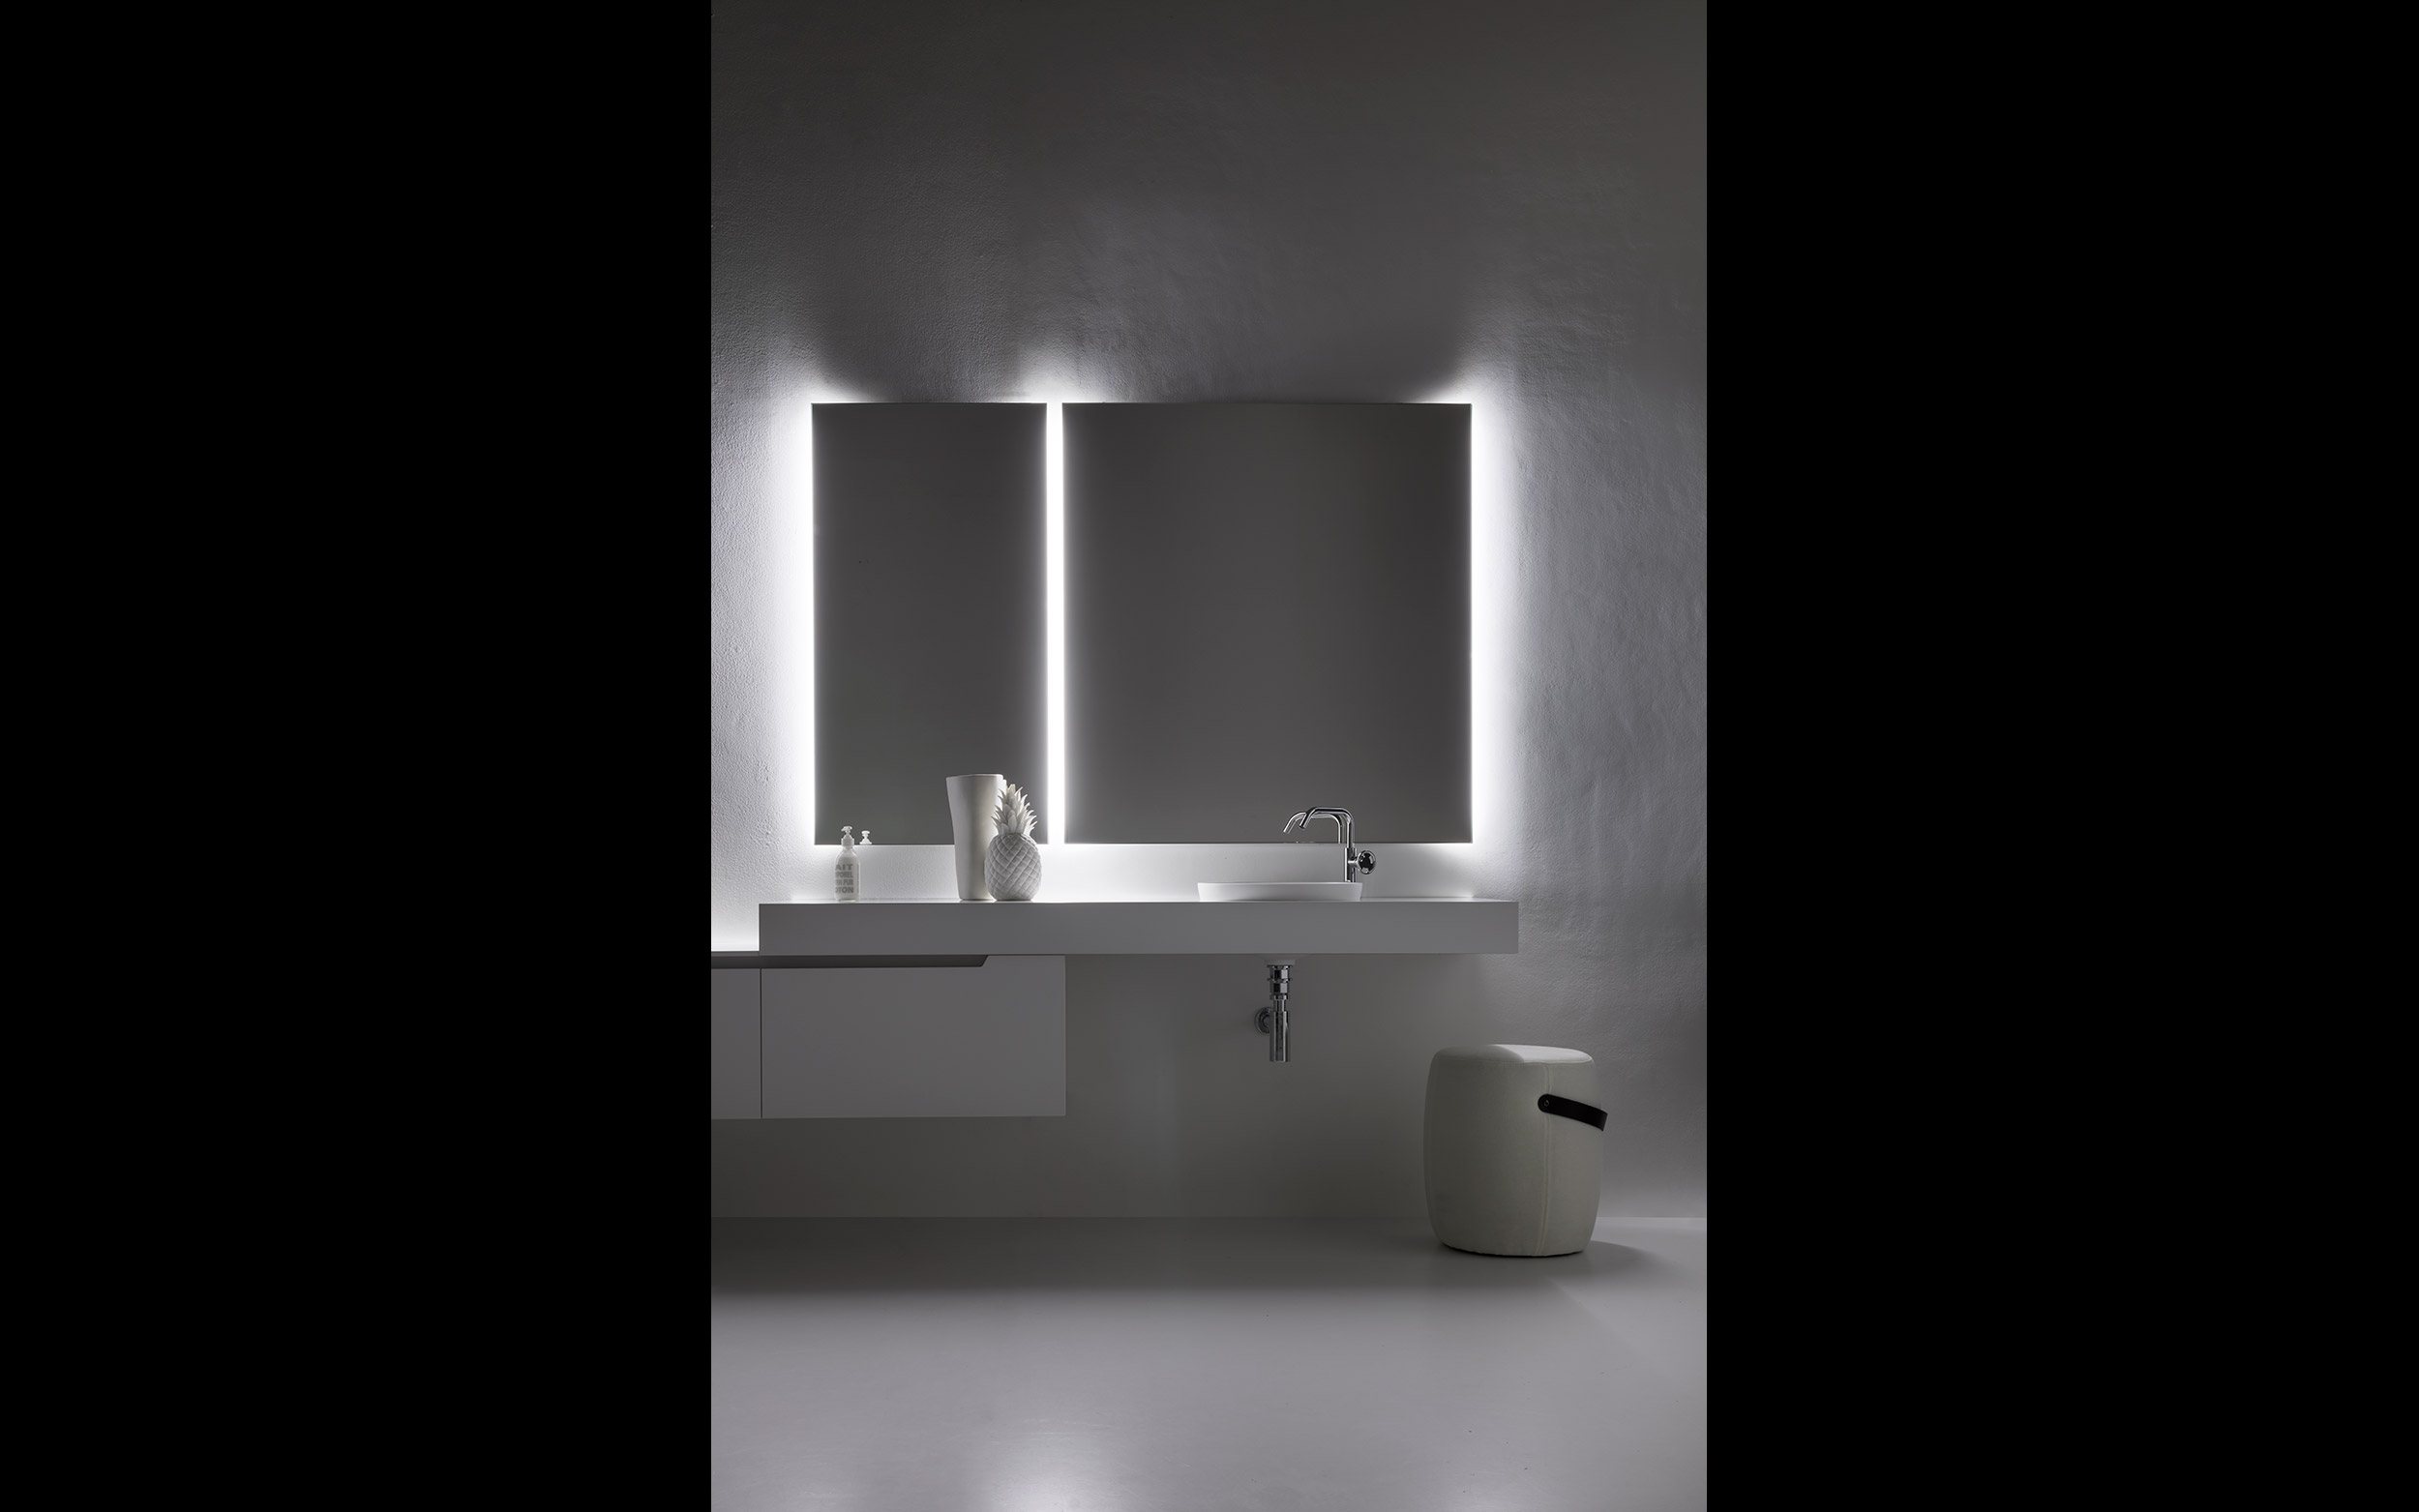 bagno luci